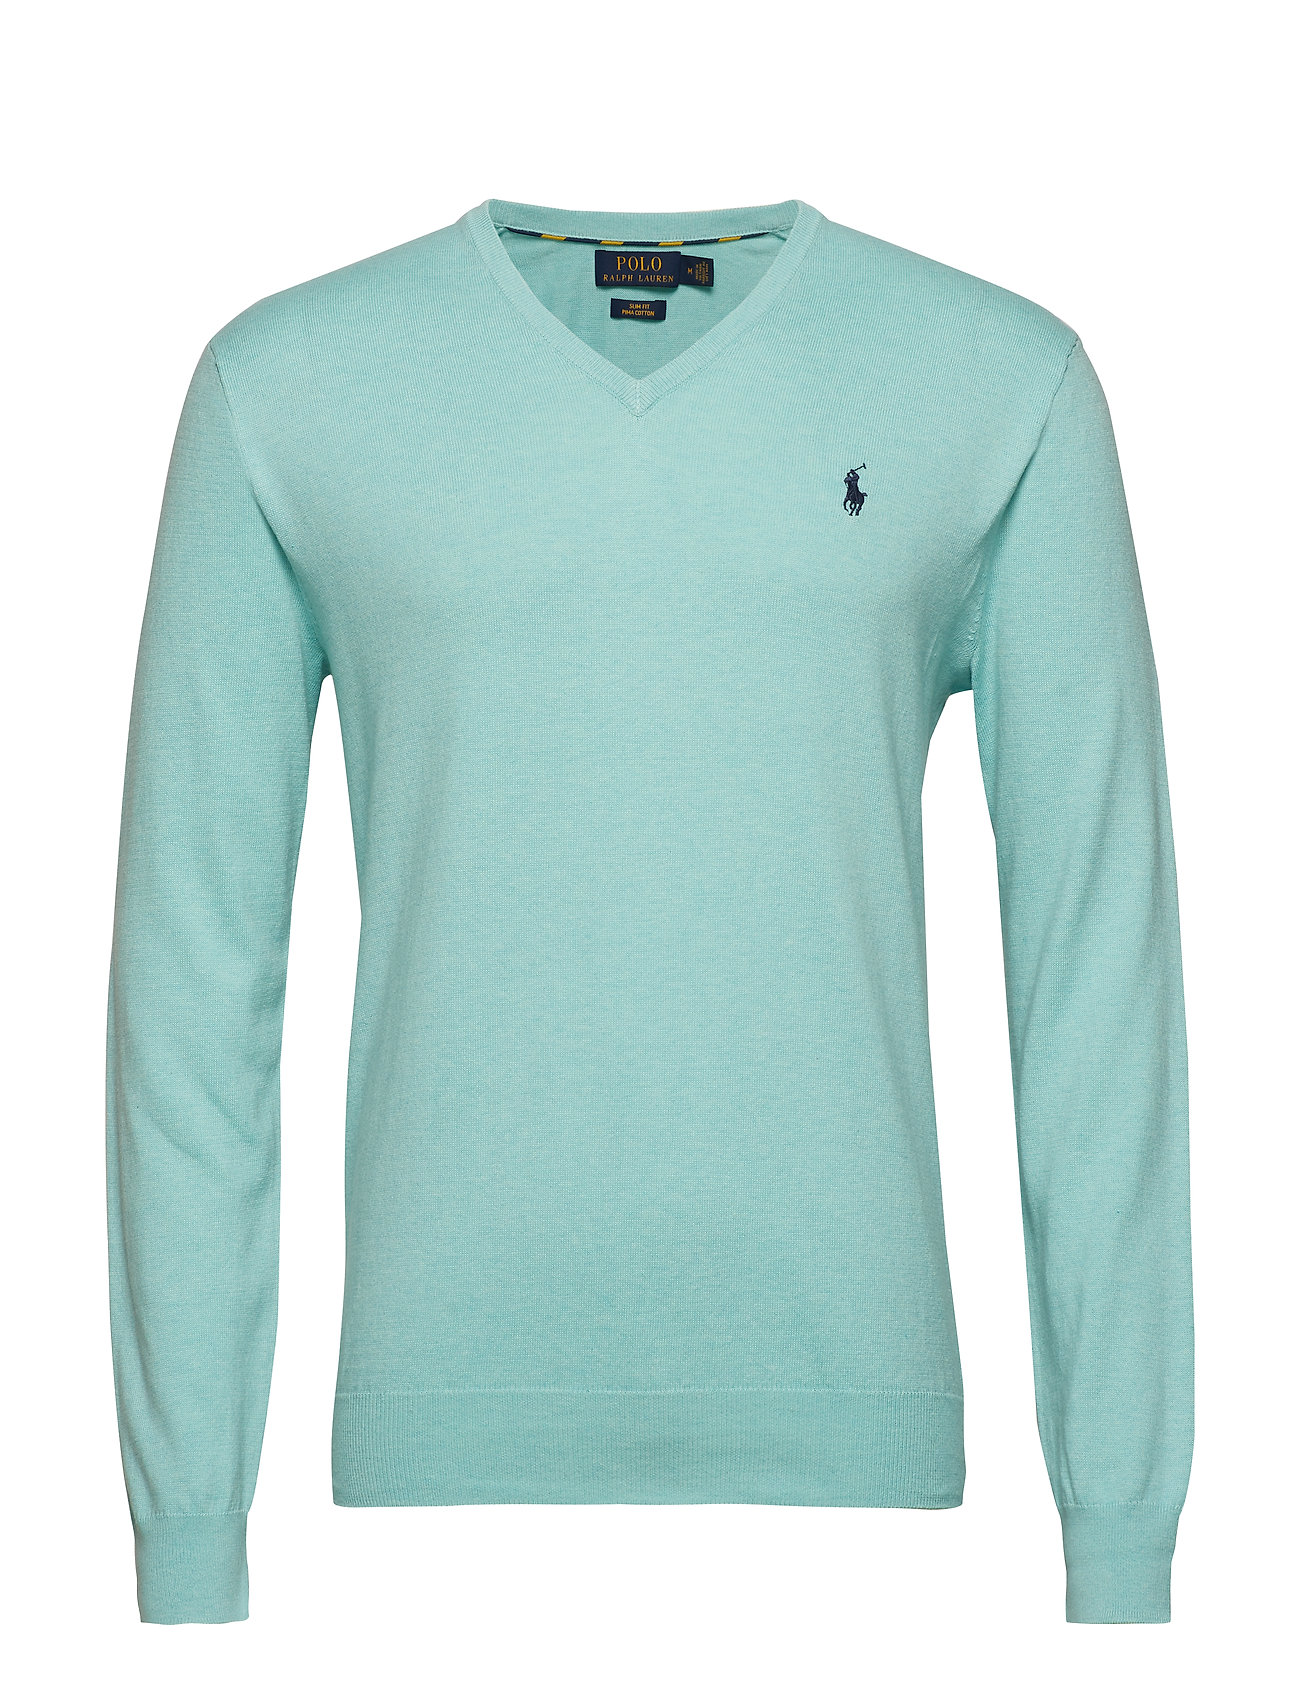 Polo Ralph Lauren Slim Fit Cotton V-Neck Sweater - BAYSIDE GREEN HEA